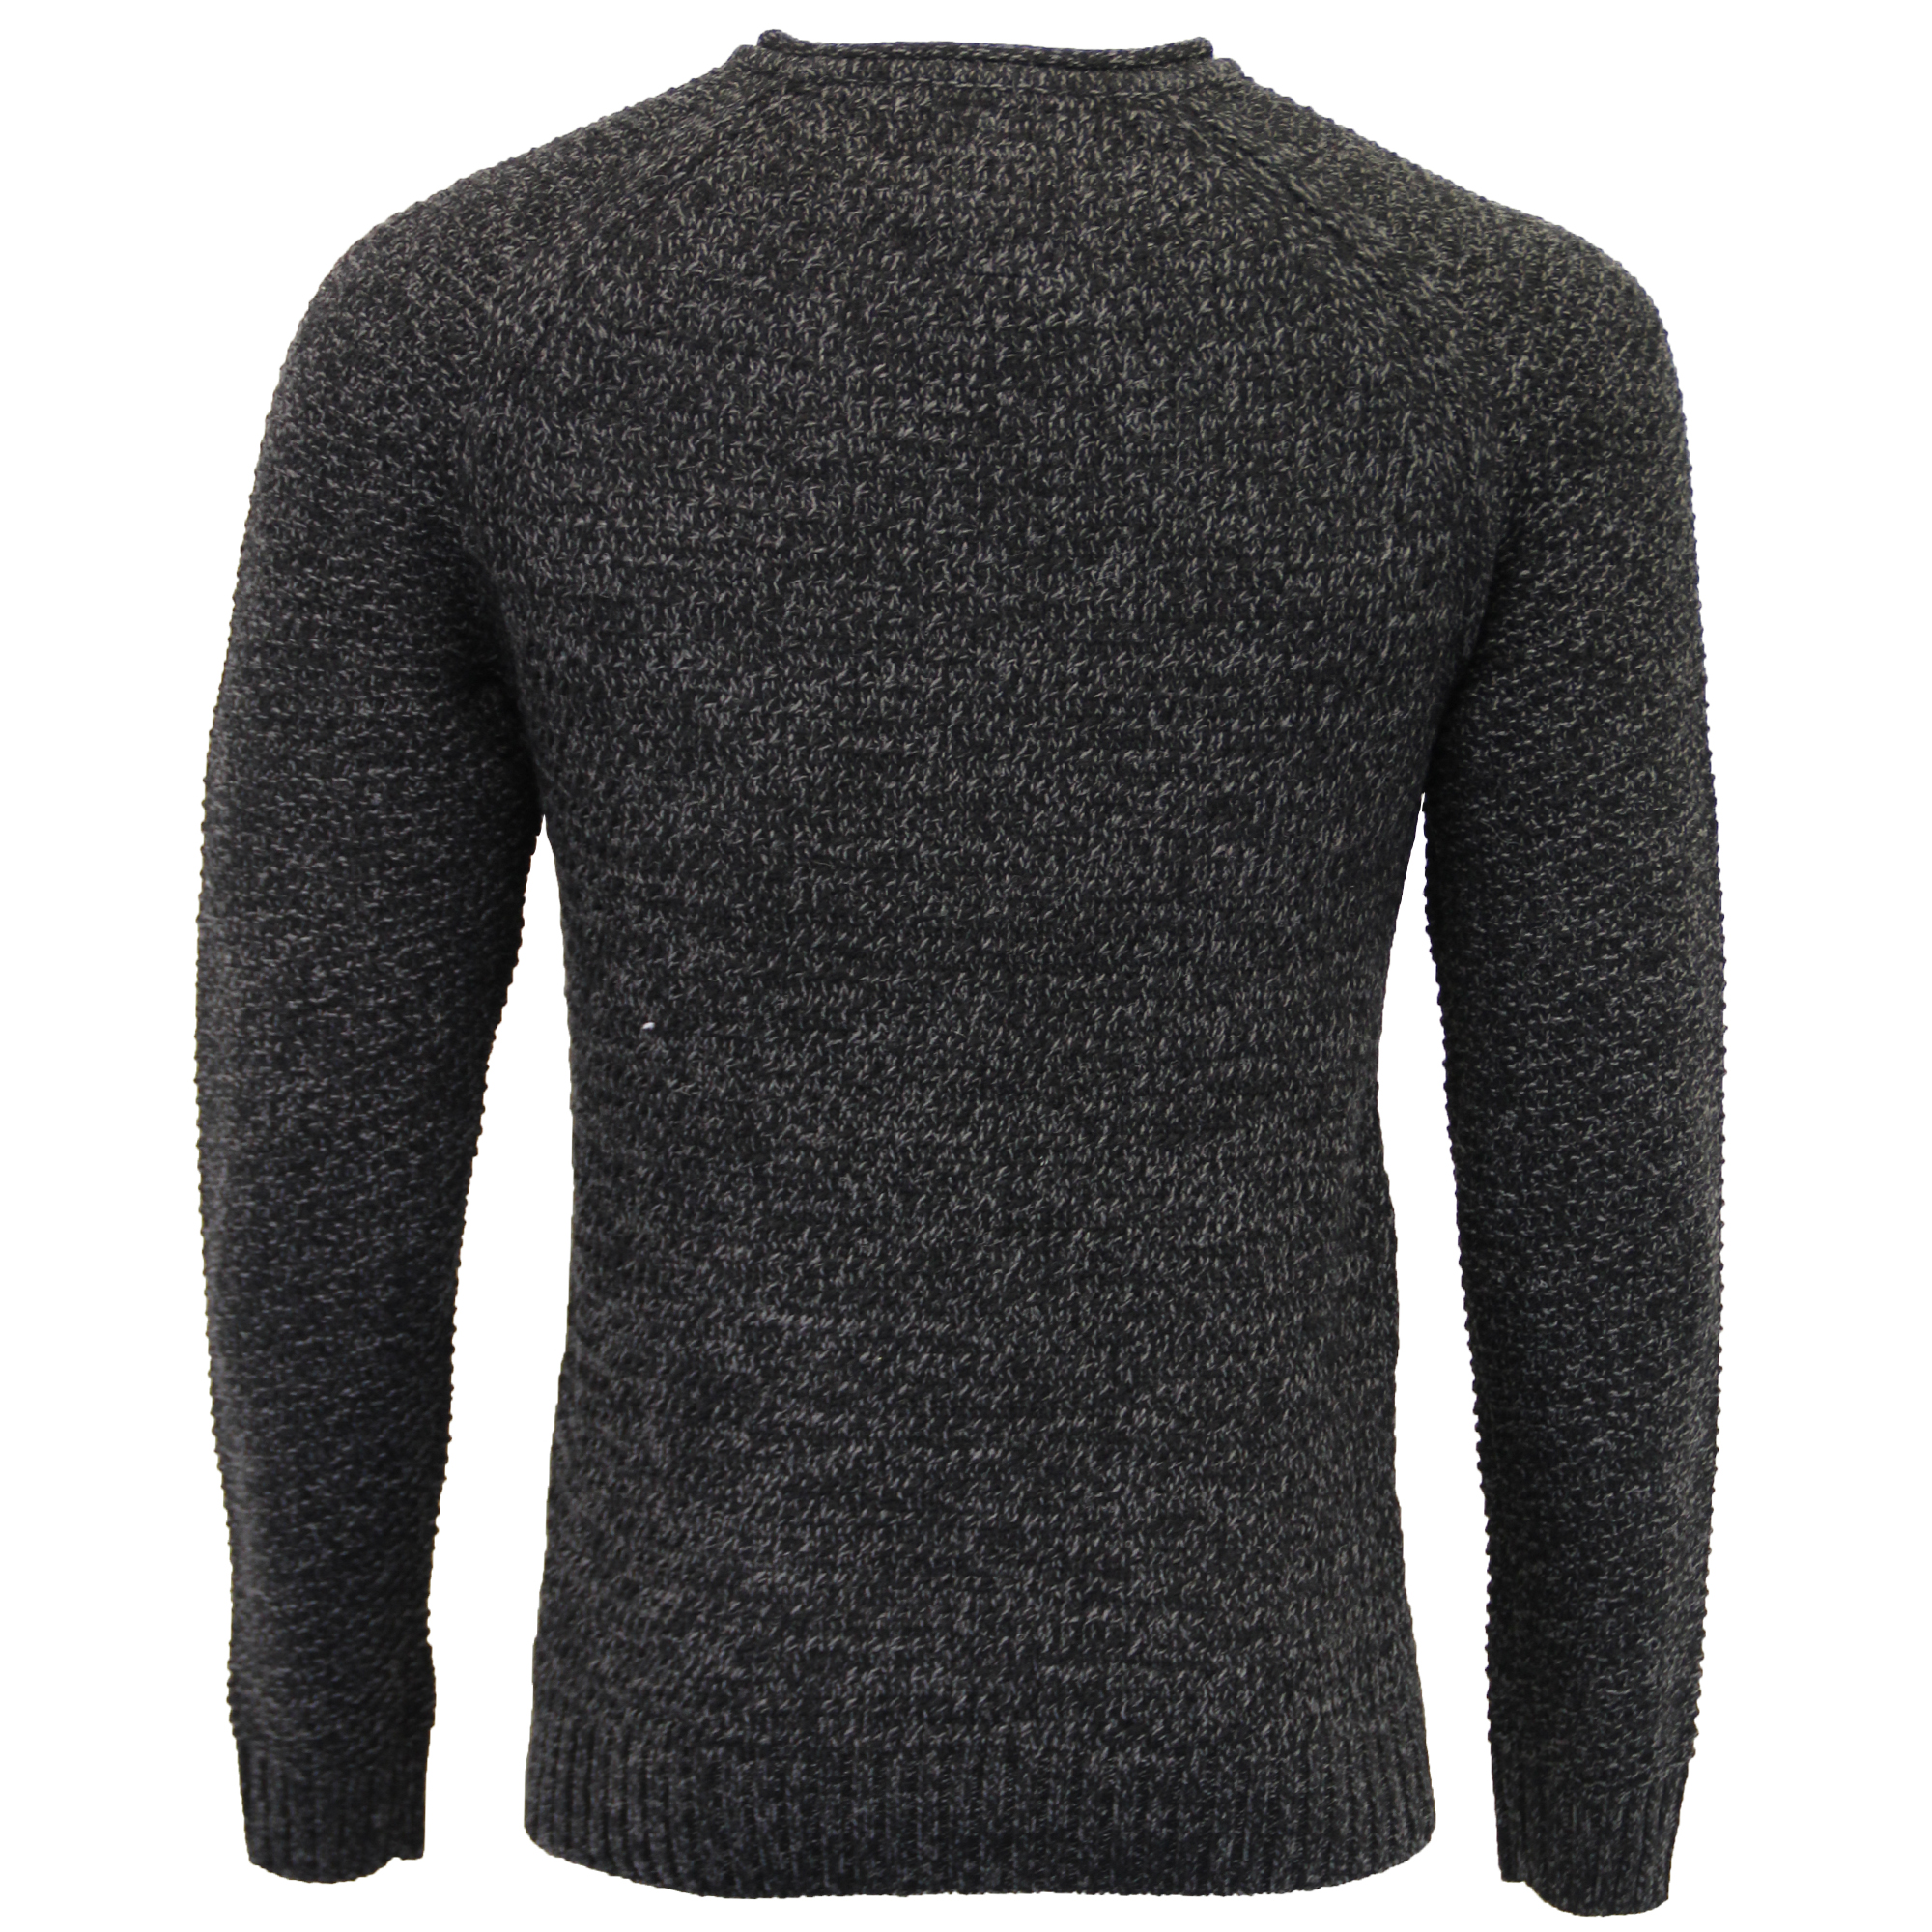 Mens-Wool-Mix-Jumper-Threadbare-Cable-Knitted-Sweater-Pullover-Top-Casual-Winter thumbnail 3